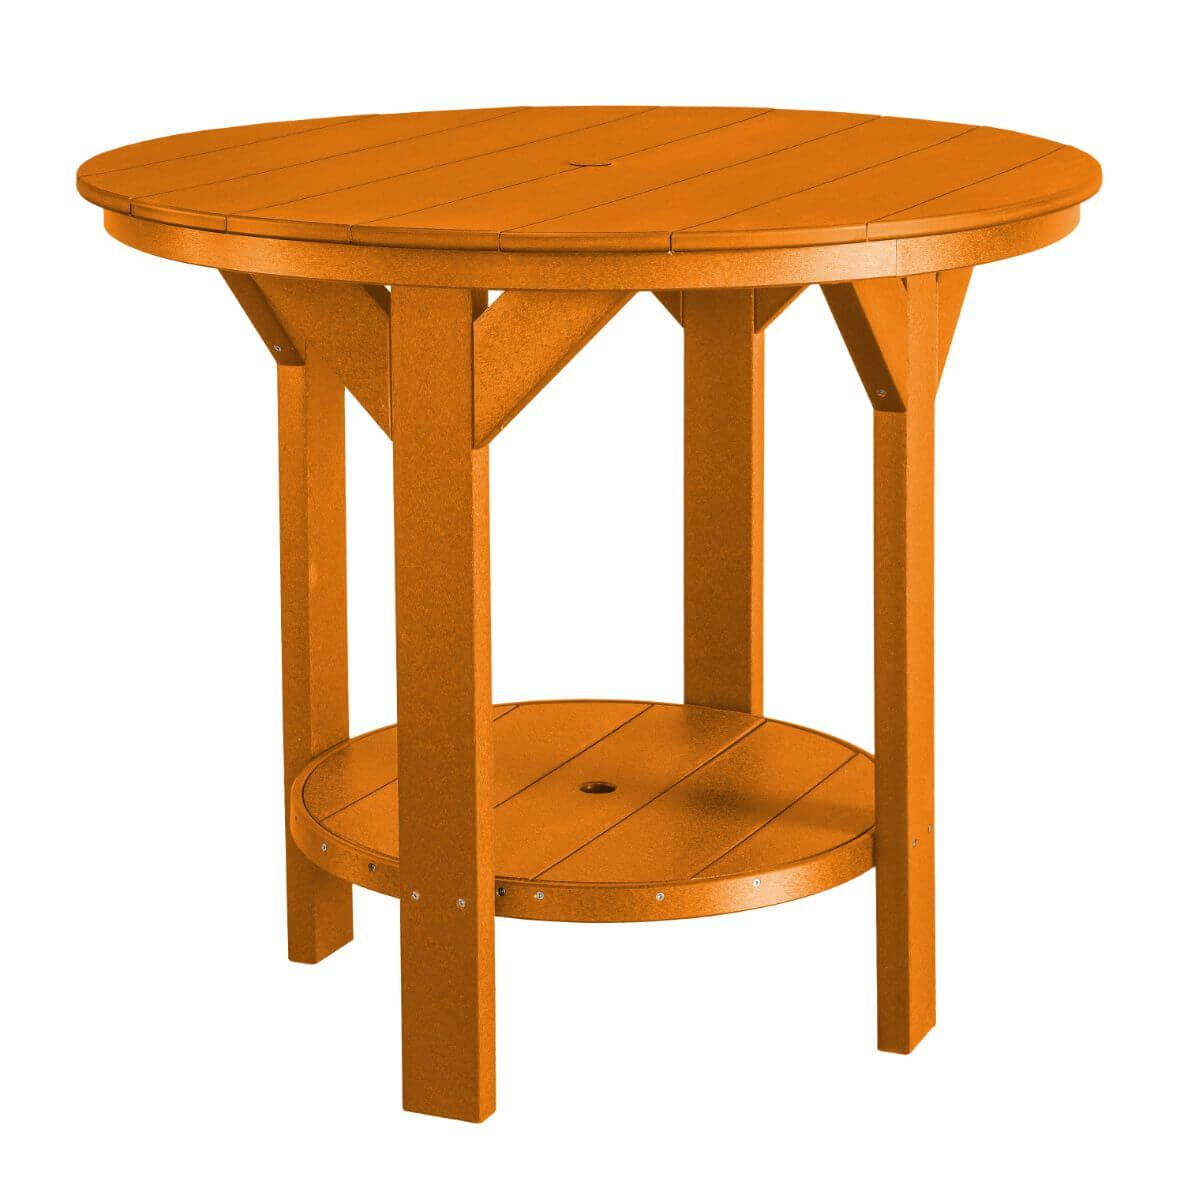 Orange Sidra Outdoor Pub Table